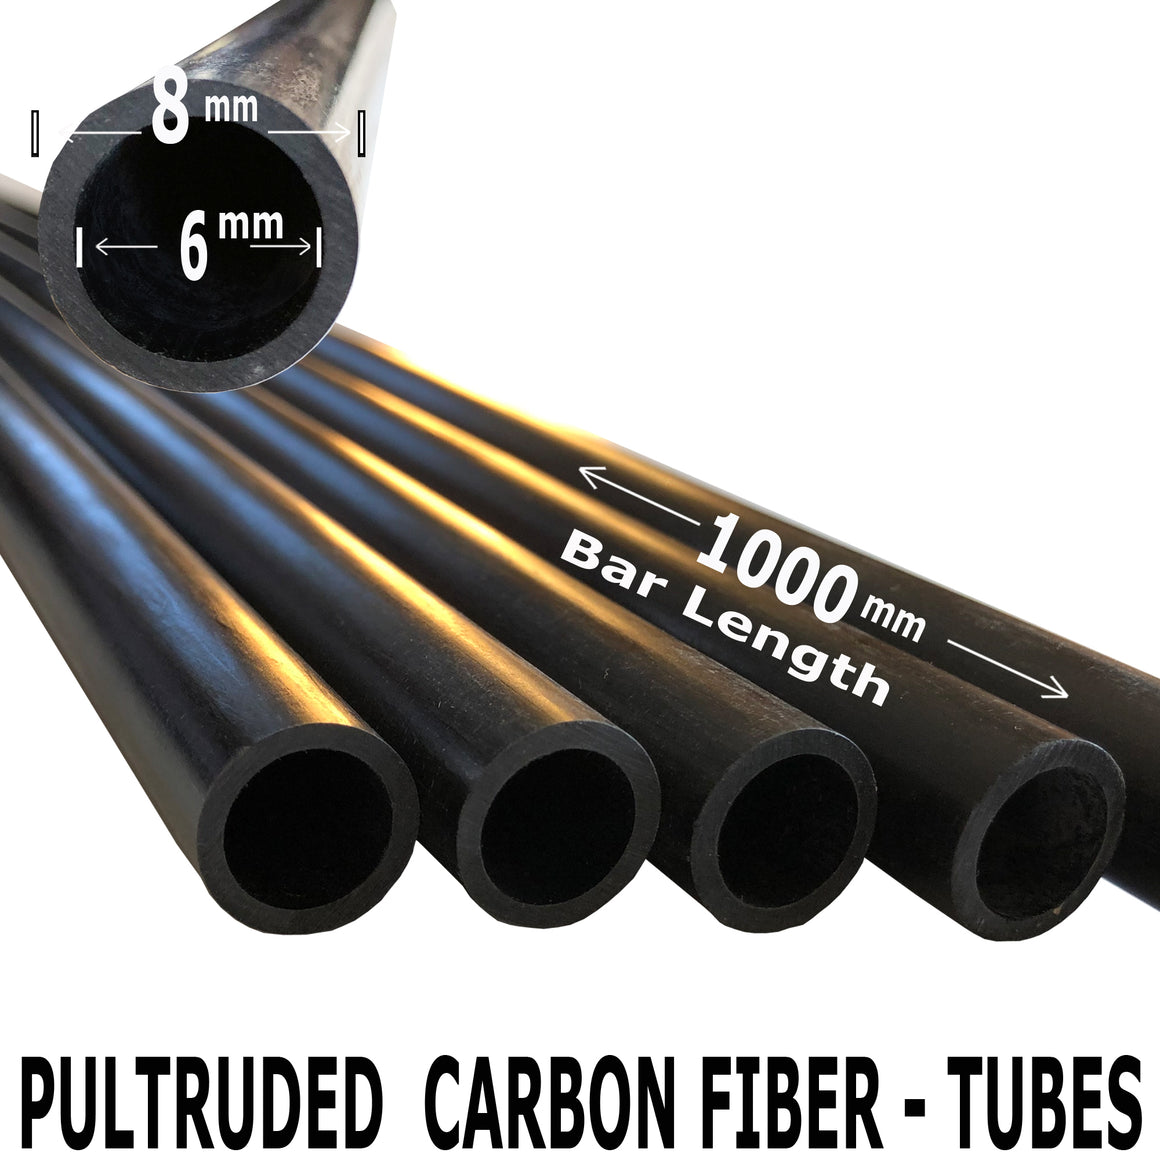 Pultruded Carbon Fiber Tubing  - 8mm x 6mm x 1000mm - High Strength